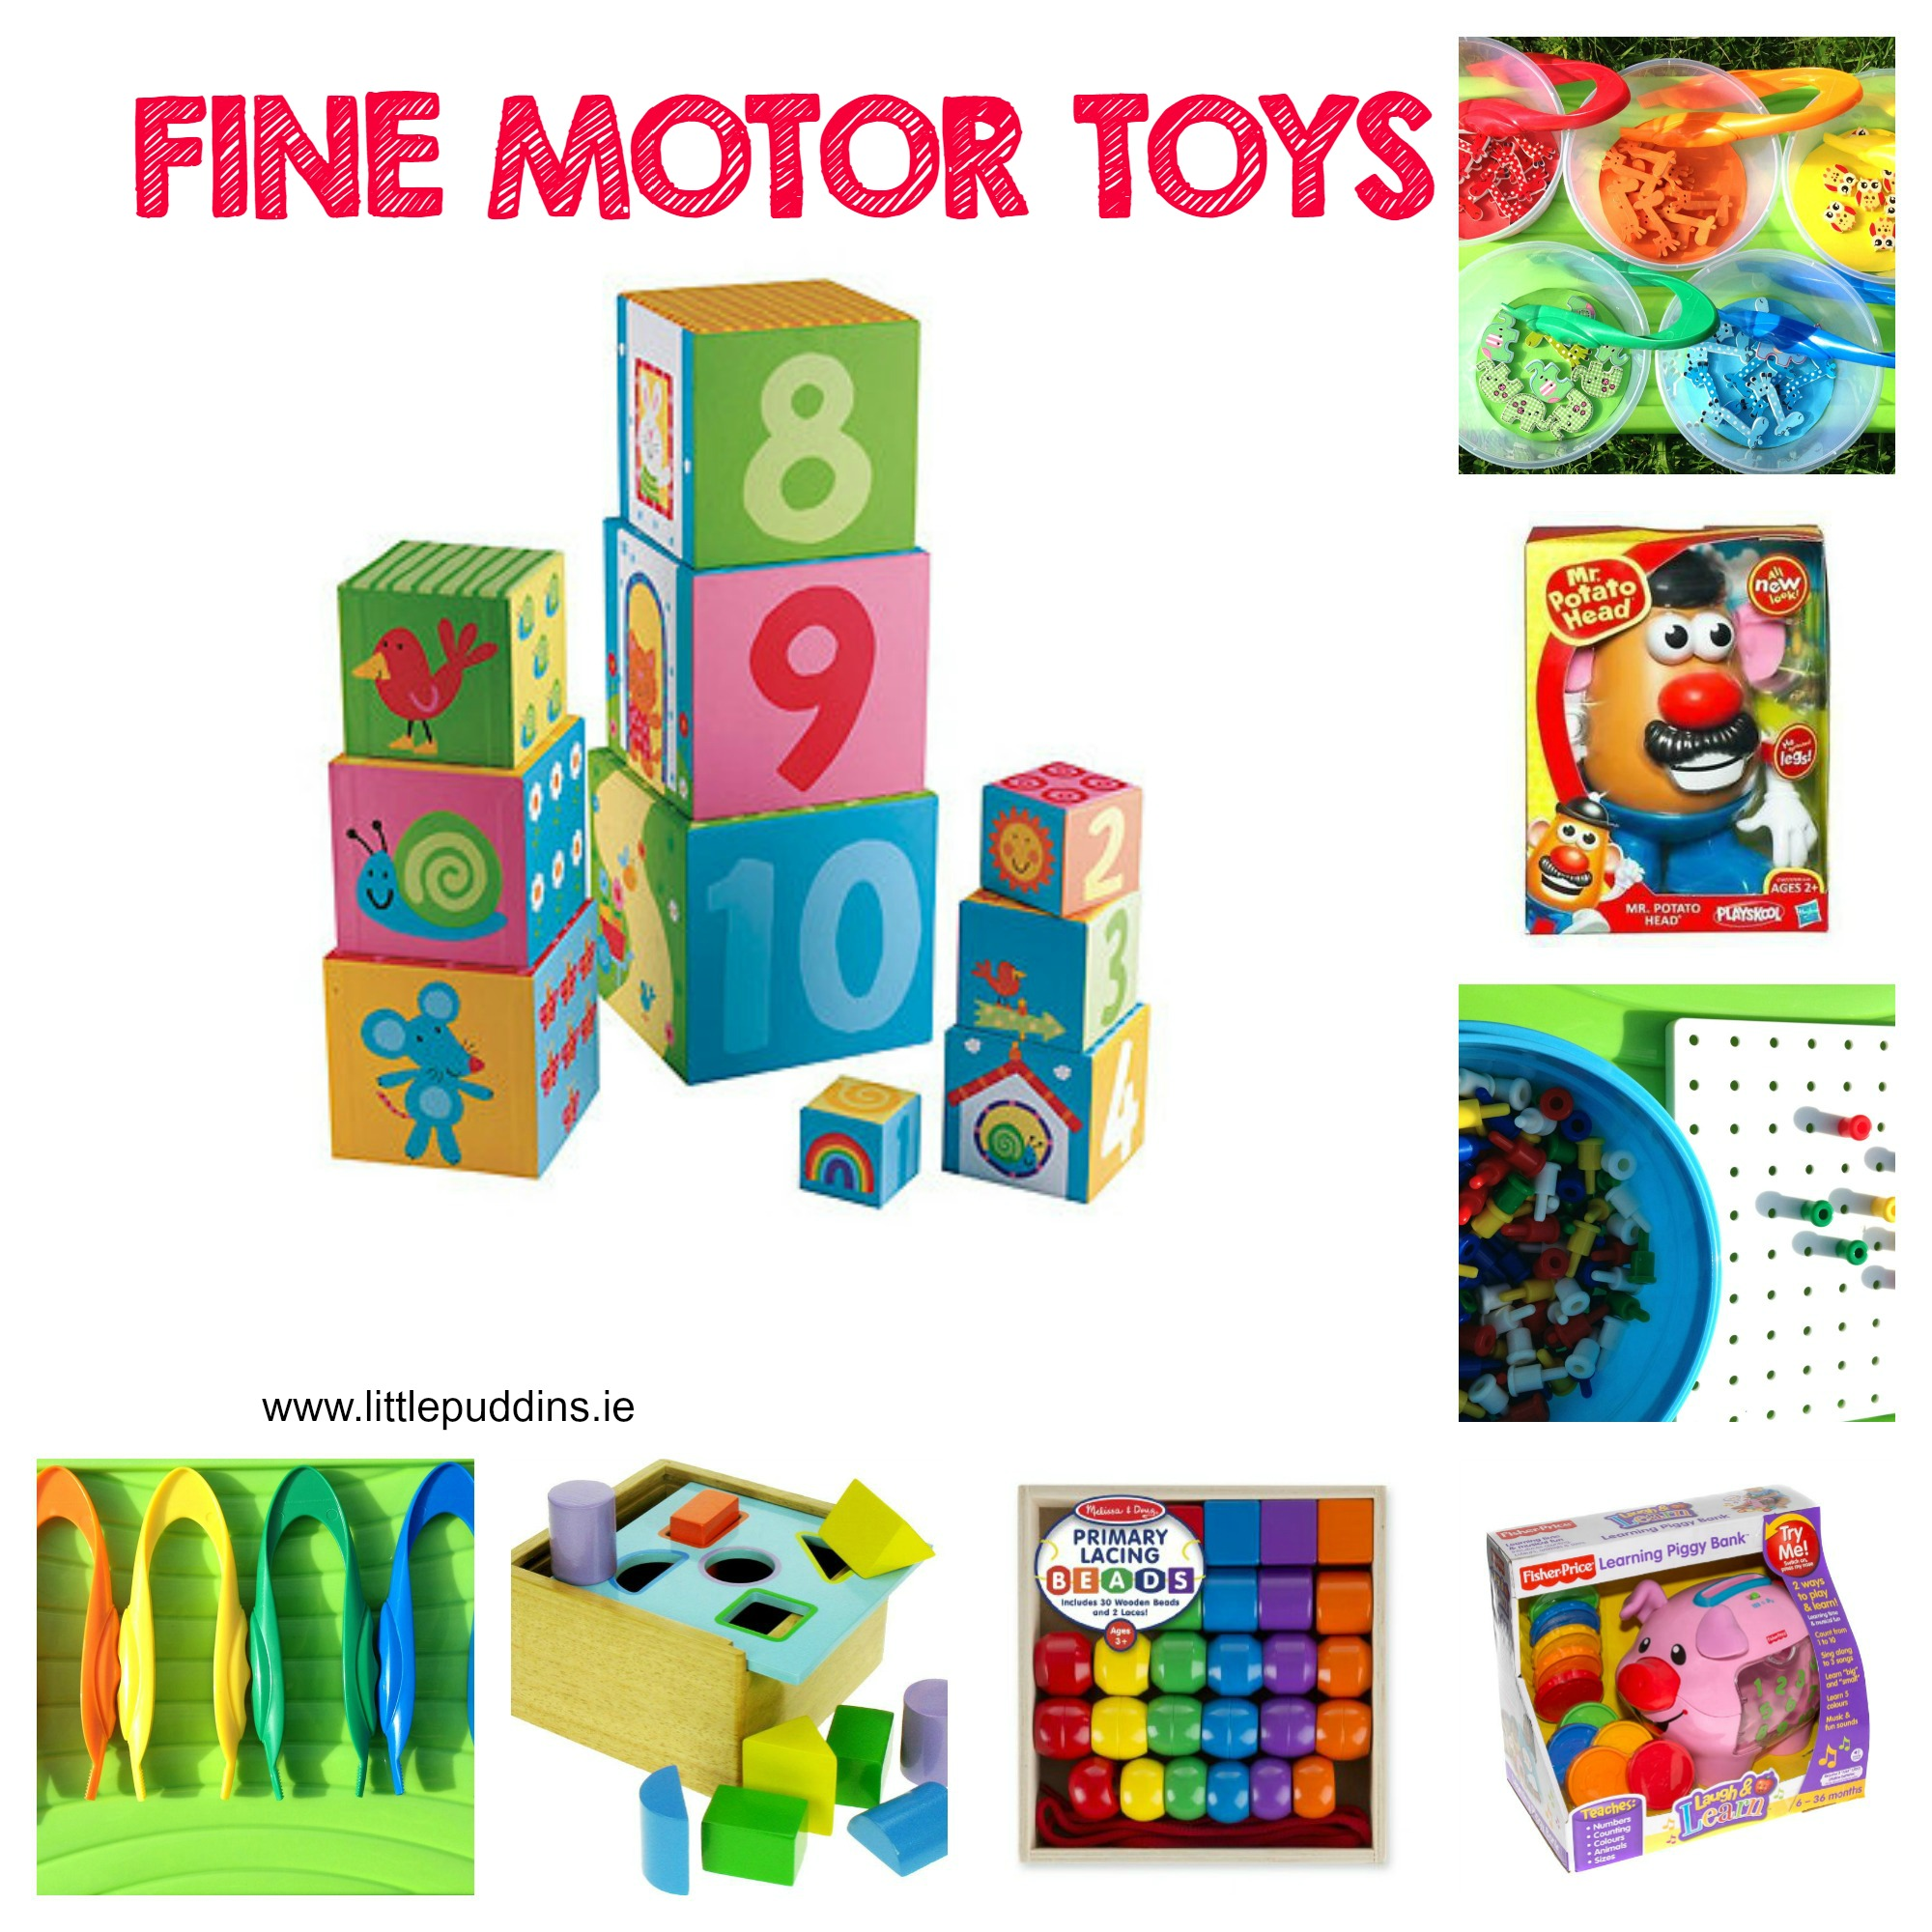 occupational therapy archives the little puddins blog fine motor toys a list